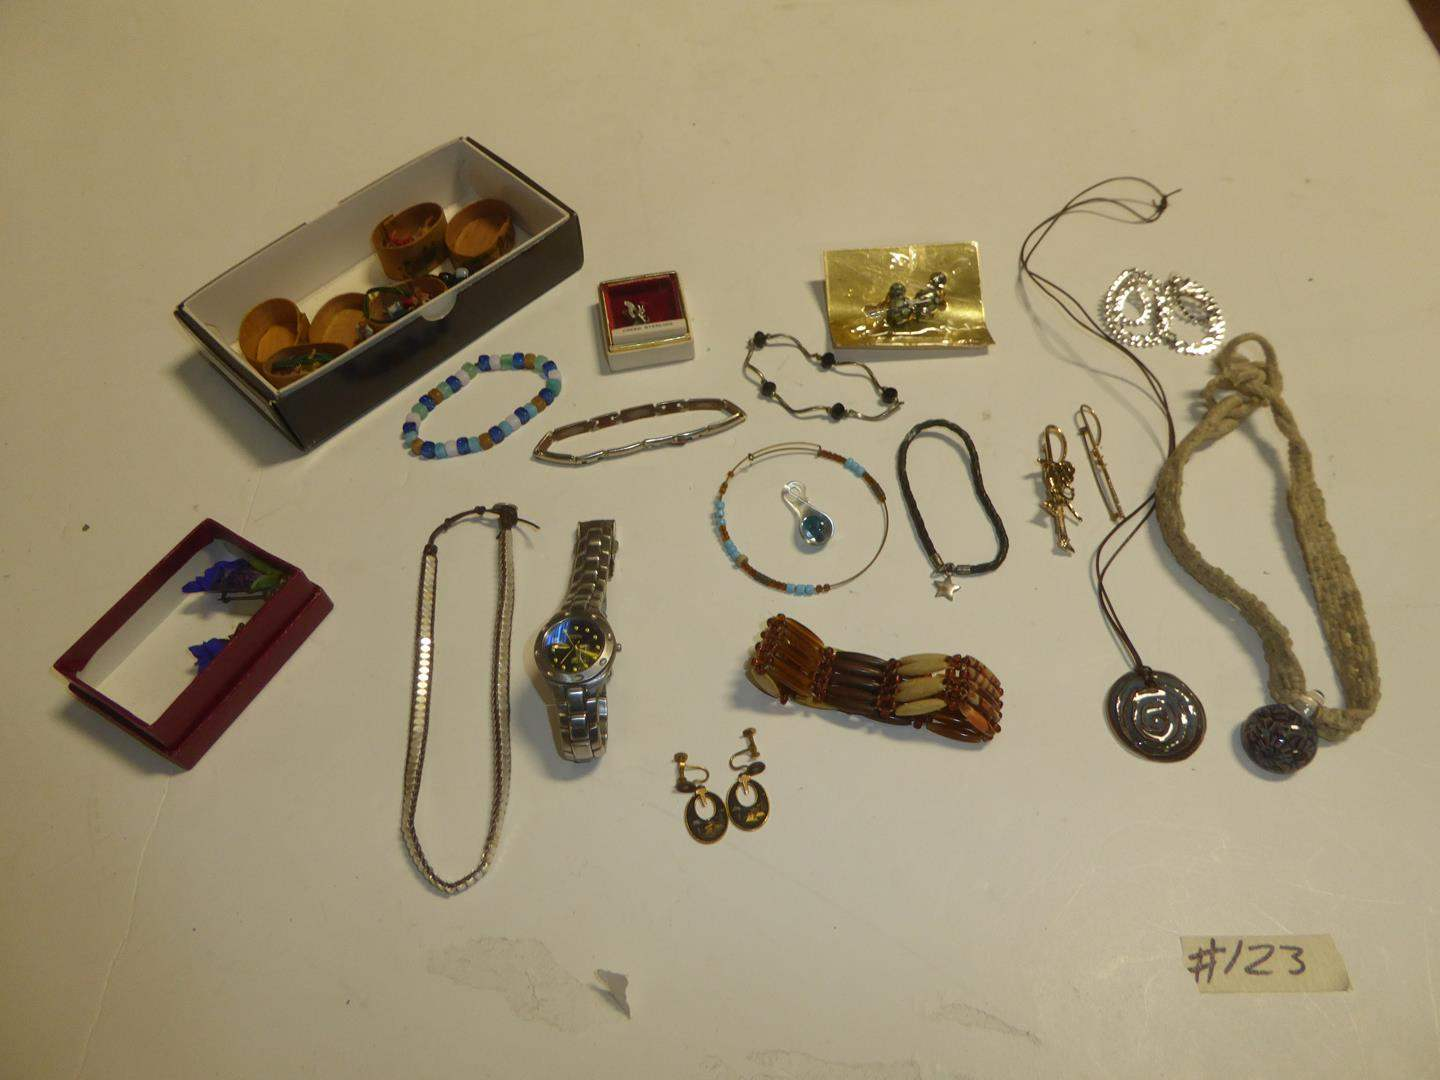 Lot # 123 - Necklaces, Fossil Wristwatch, Bracelets & Earrings (main image)